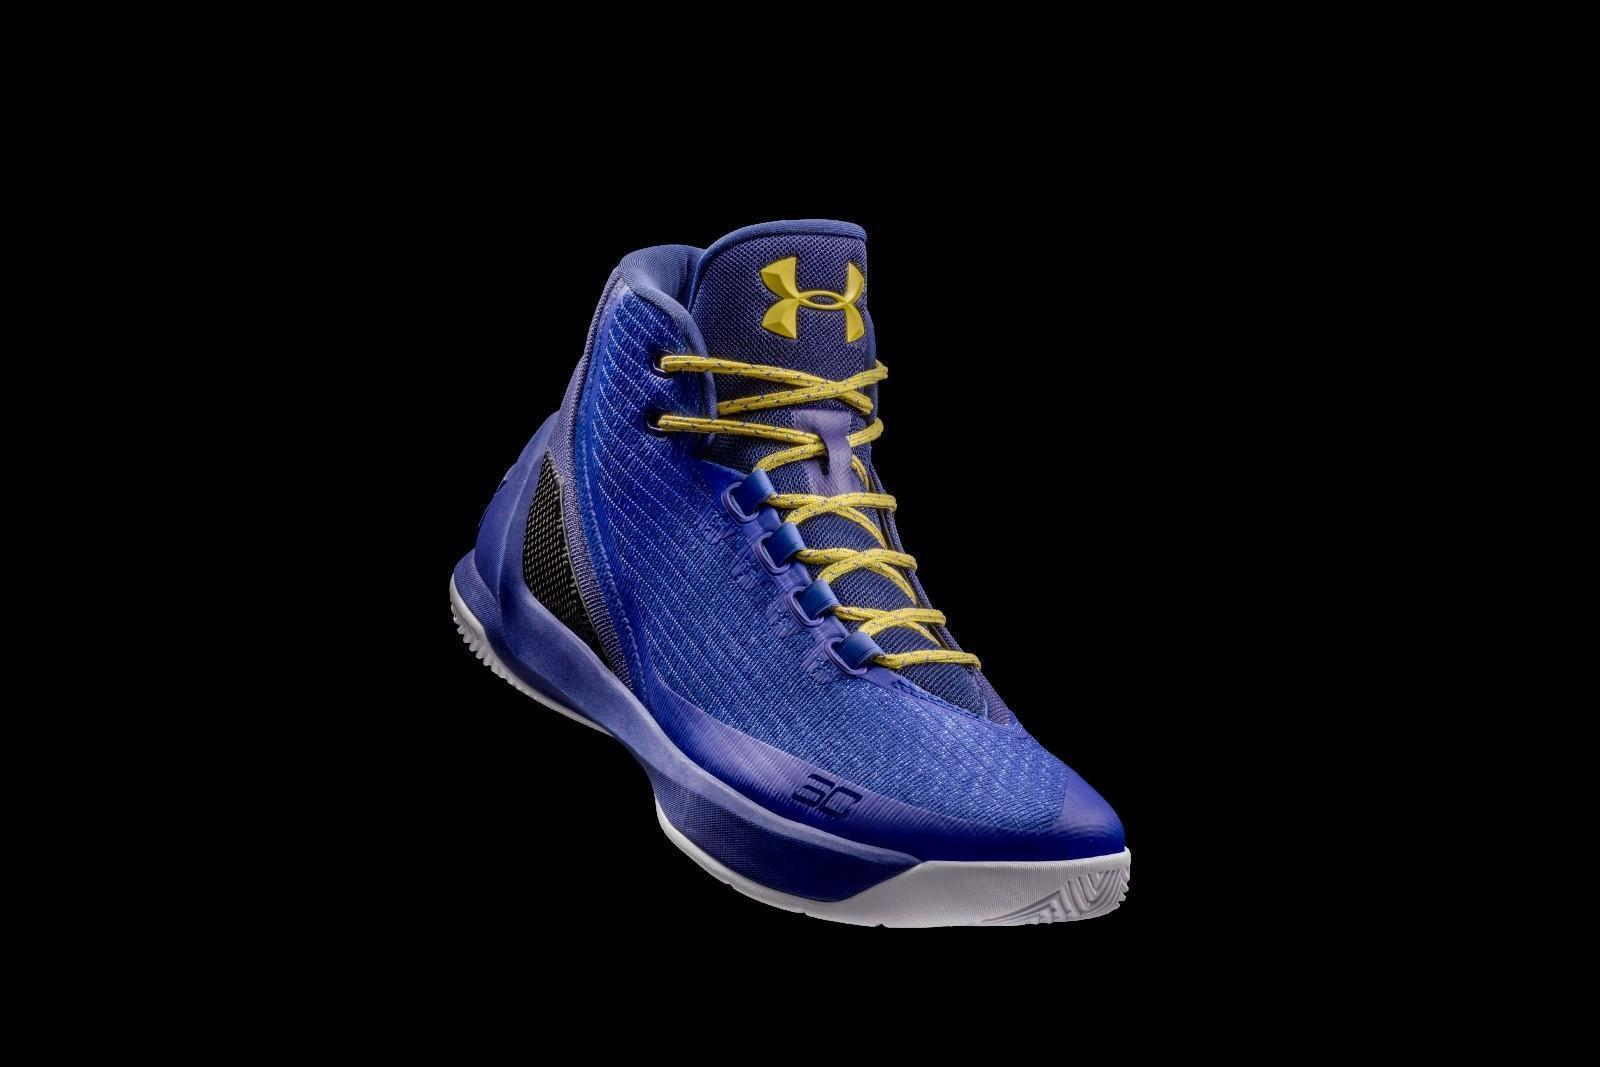 New Curry Shoes Coming Out